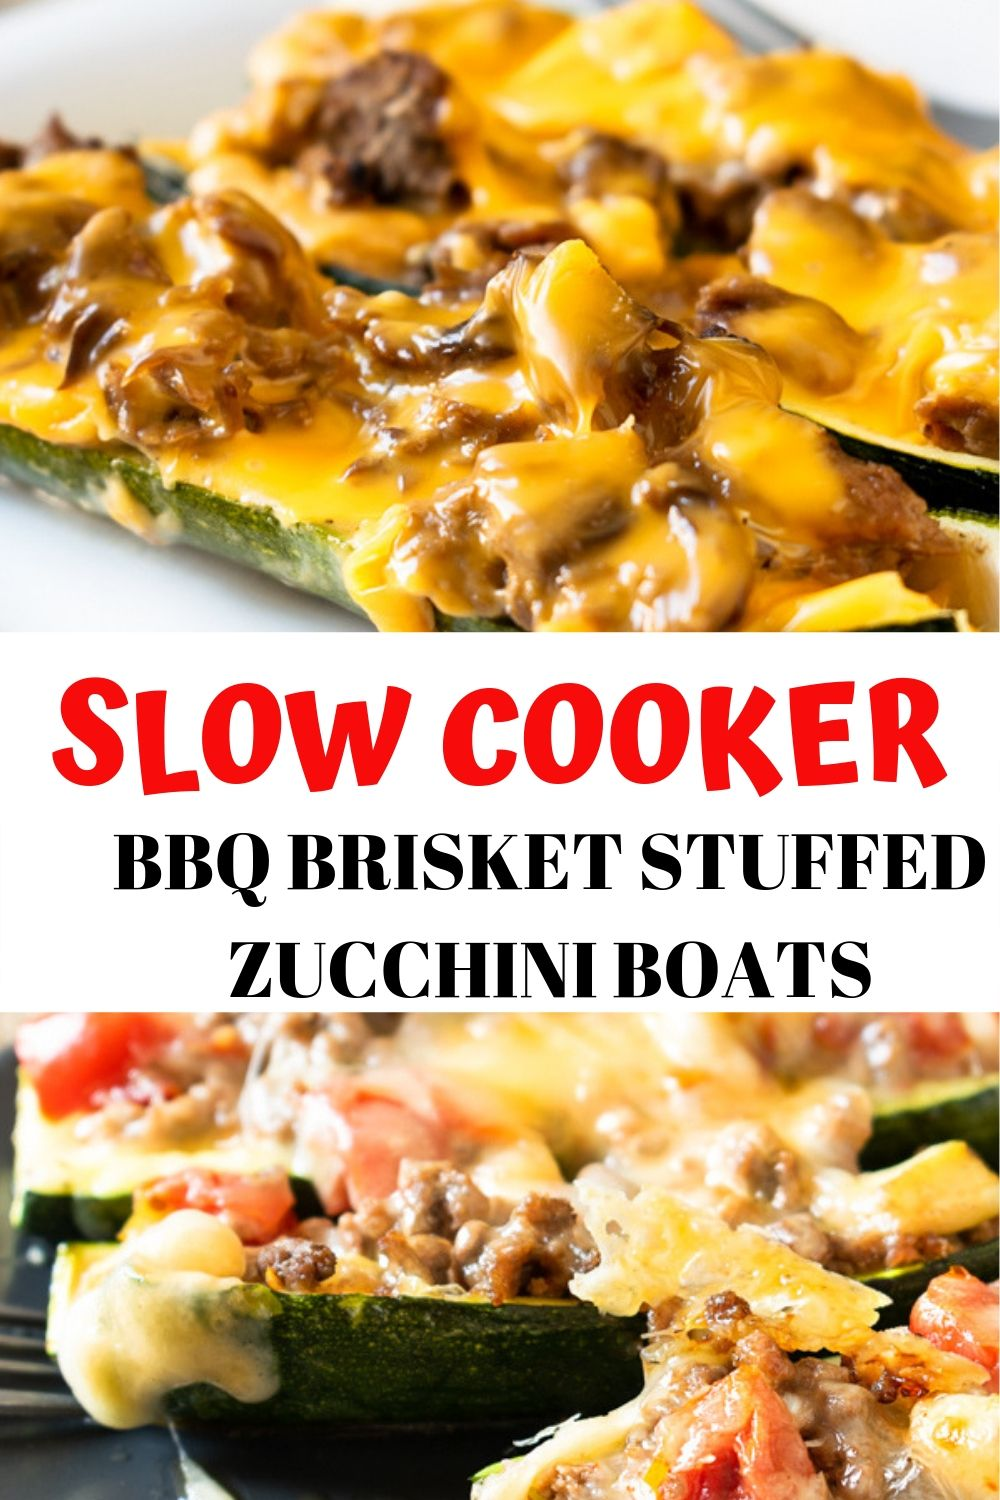 Slow Cooker BBQ Brisket Stuffed Zucchini Boats will refine dinner with it's oh so tender BBQ Beef and gooey cheese. The secret to this recipe is the delicious low carb BBQ sauce! This recipe slow cooks all day when you're at work and is finished off in the oven. Total hands on time is less than 30 minutes!